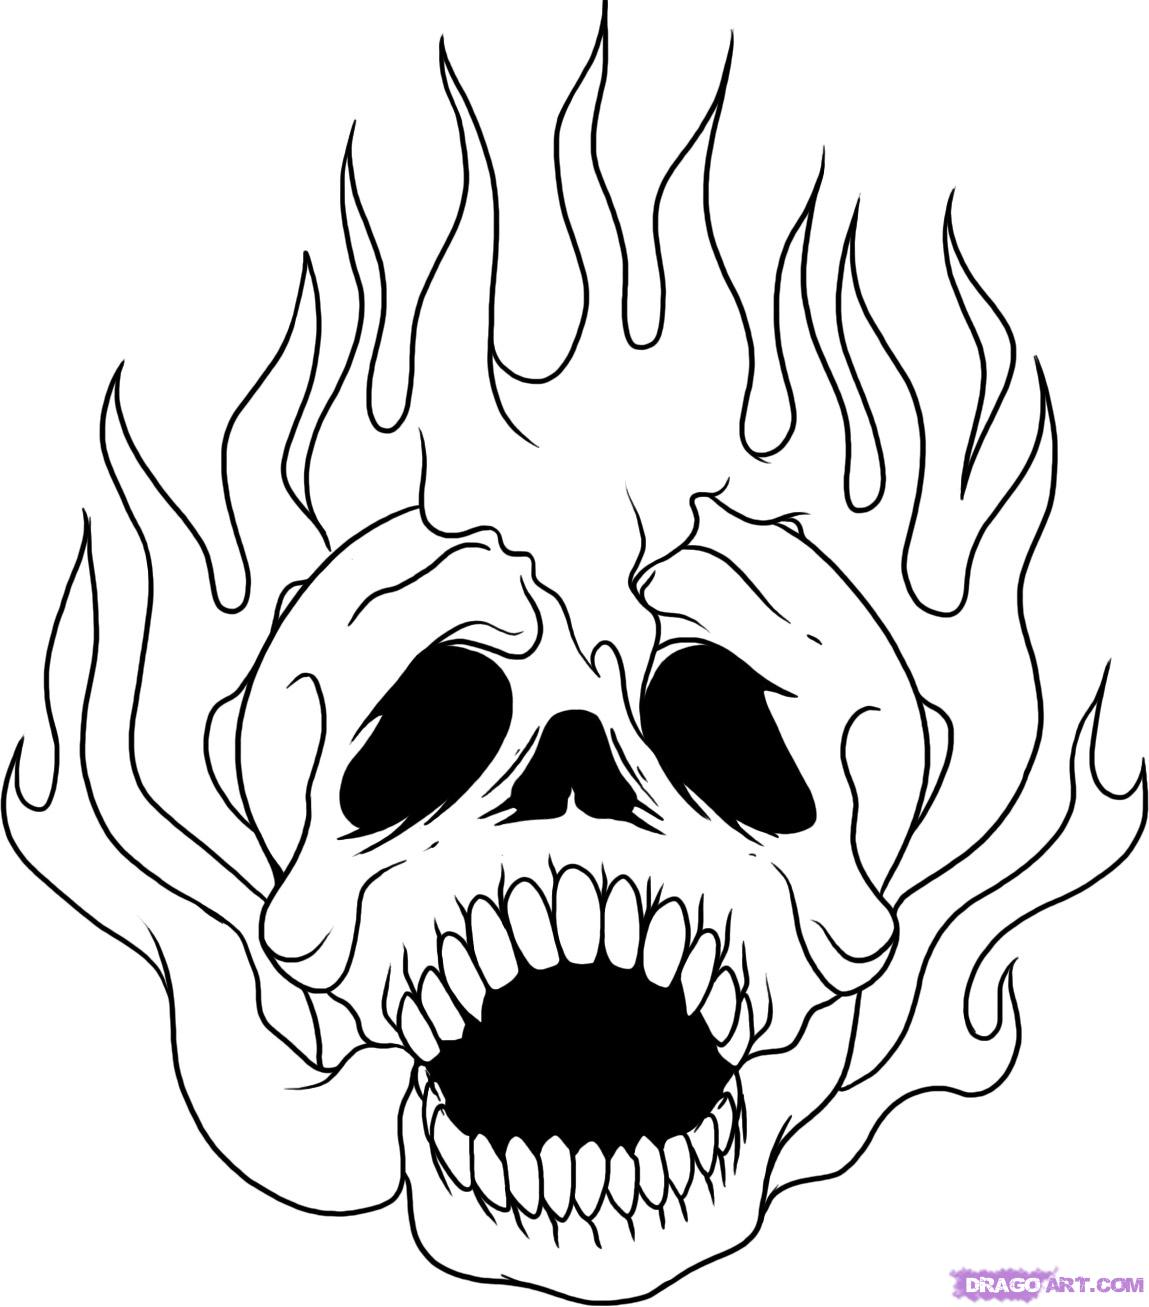 Drawn ssckull flame Skull how to Culture Step